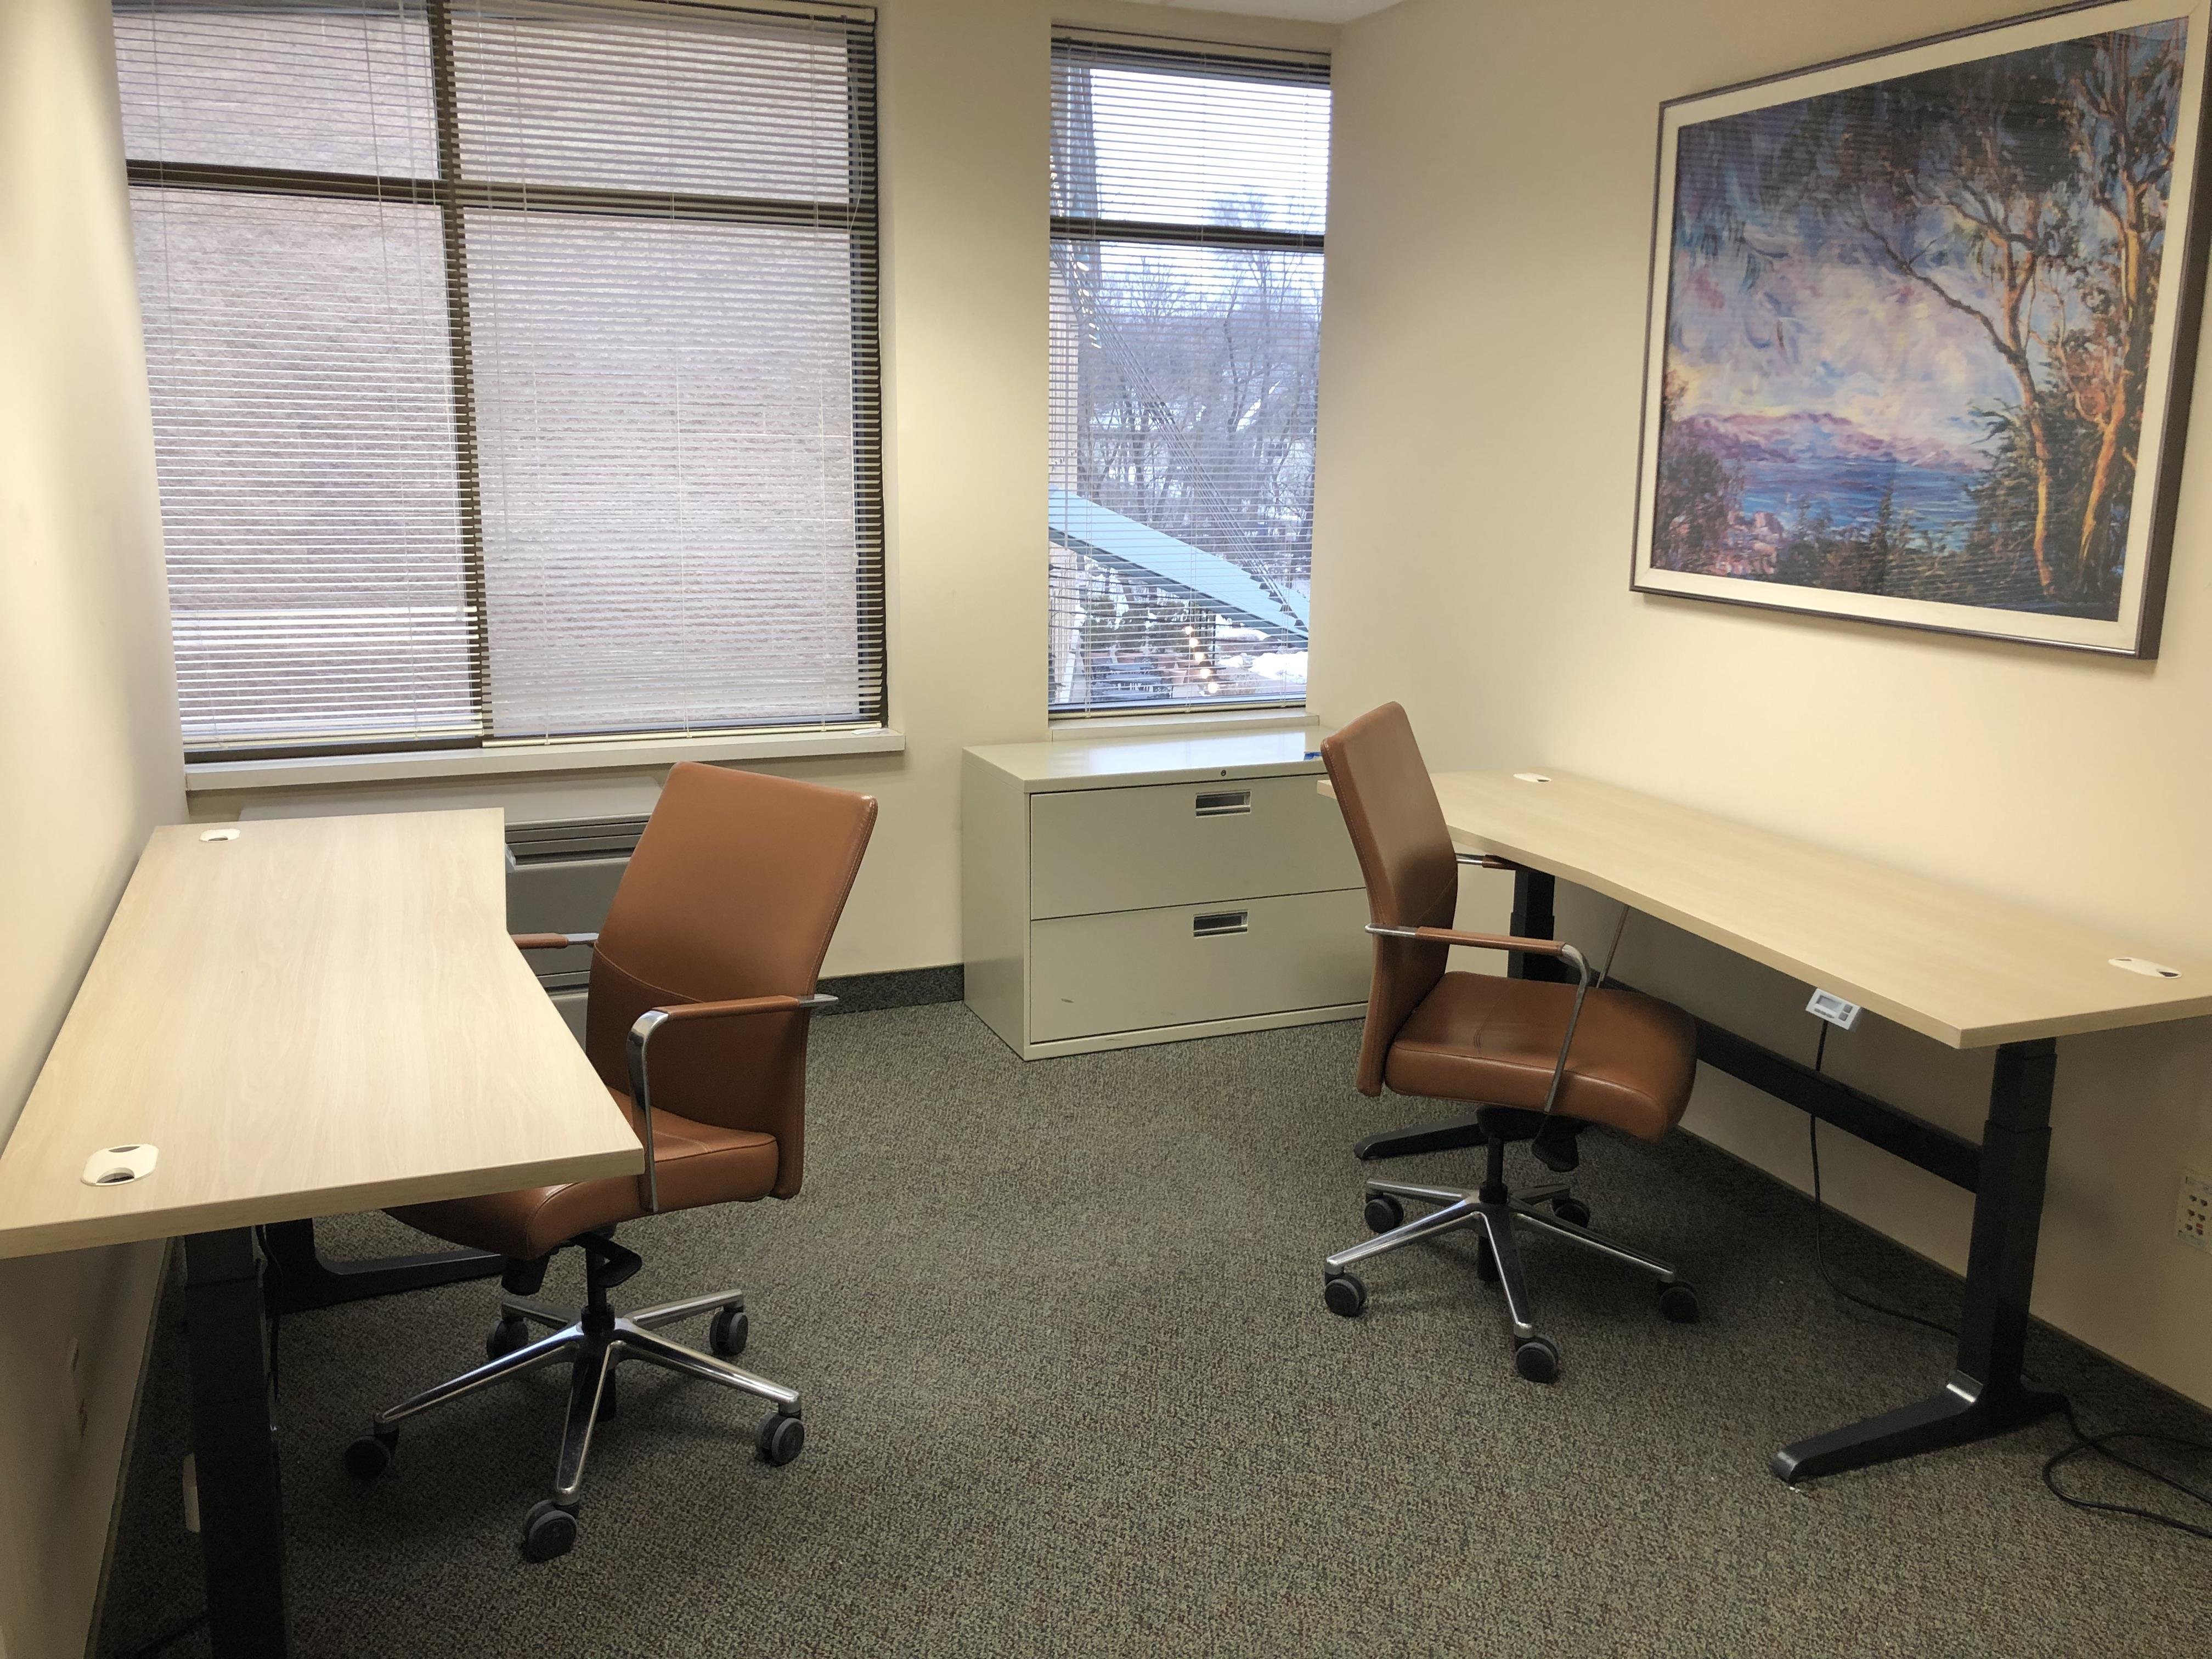 Filament Workplace - Private Office